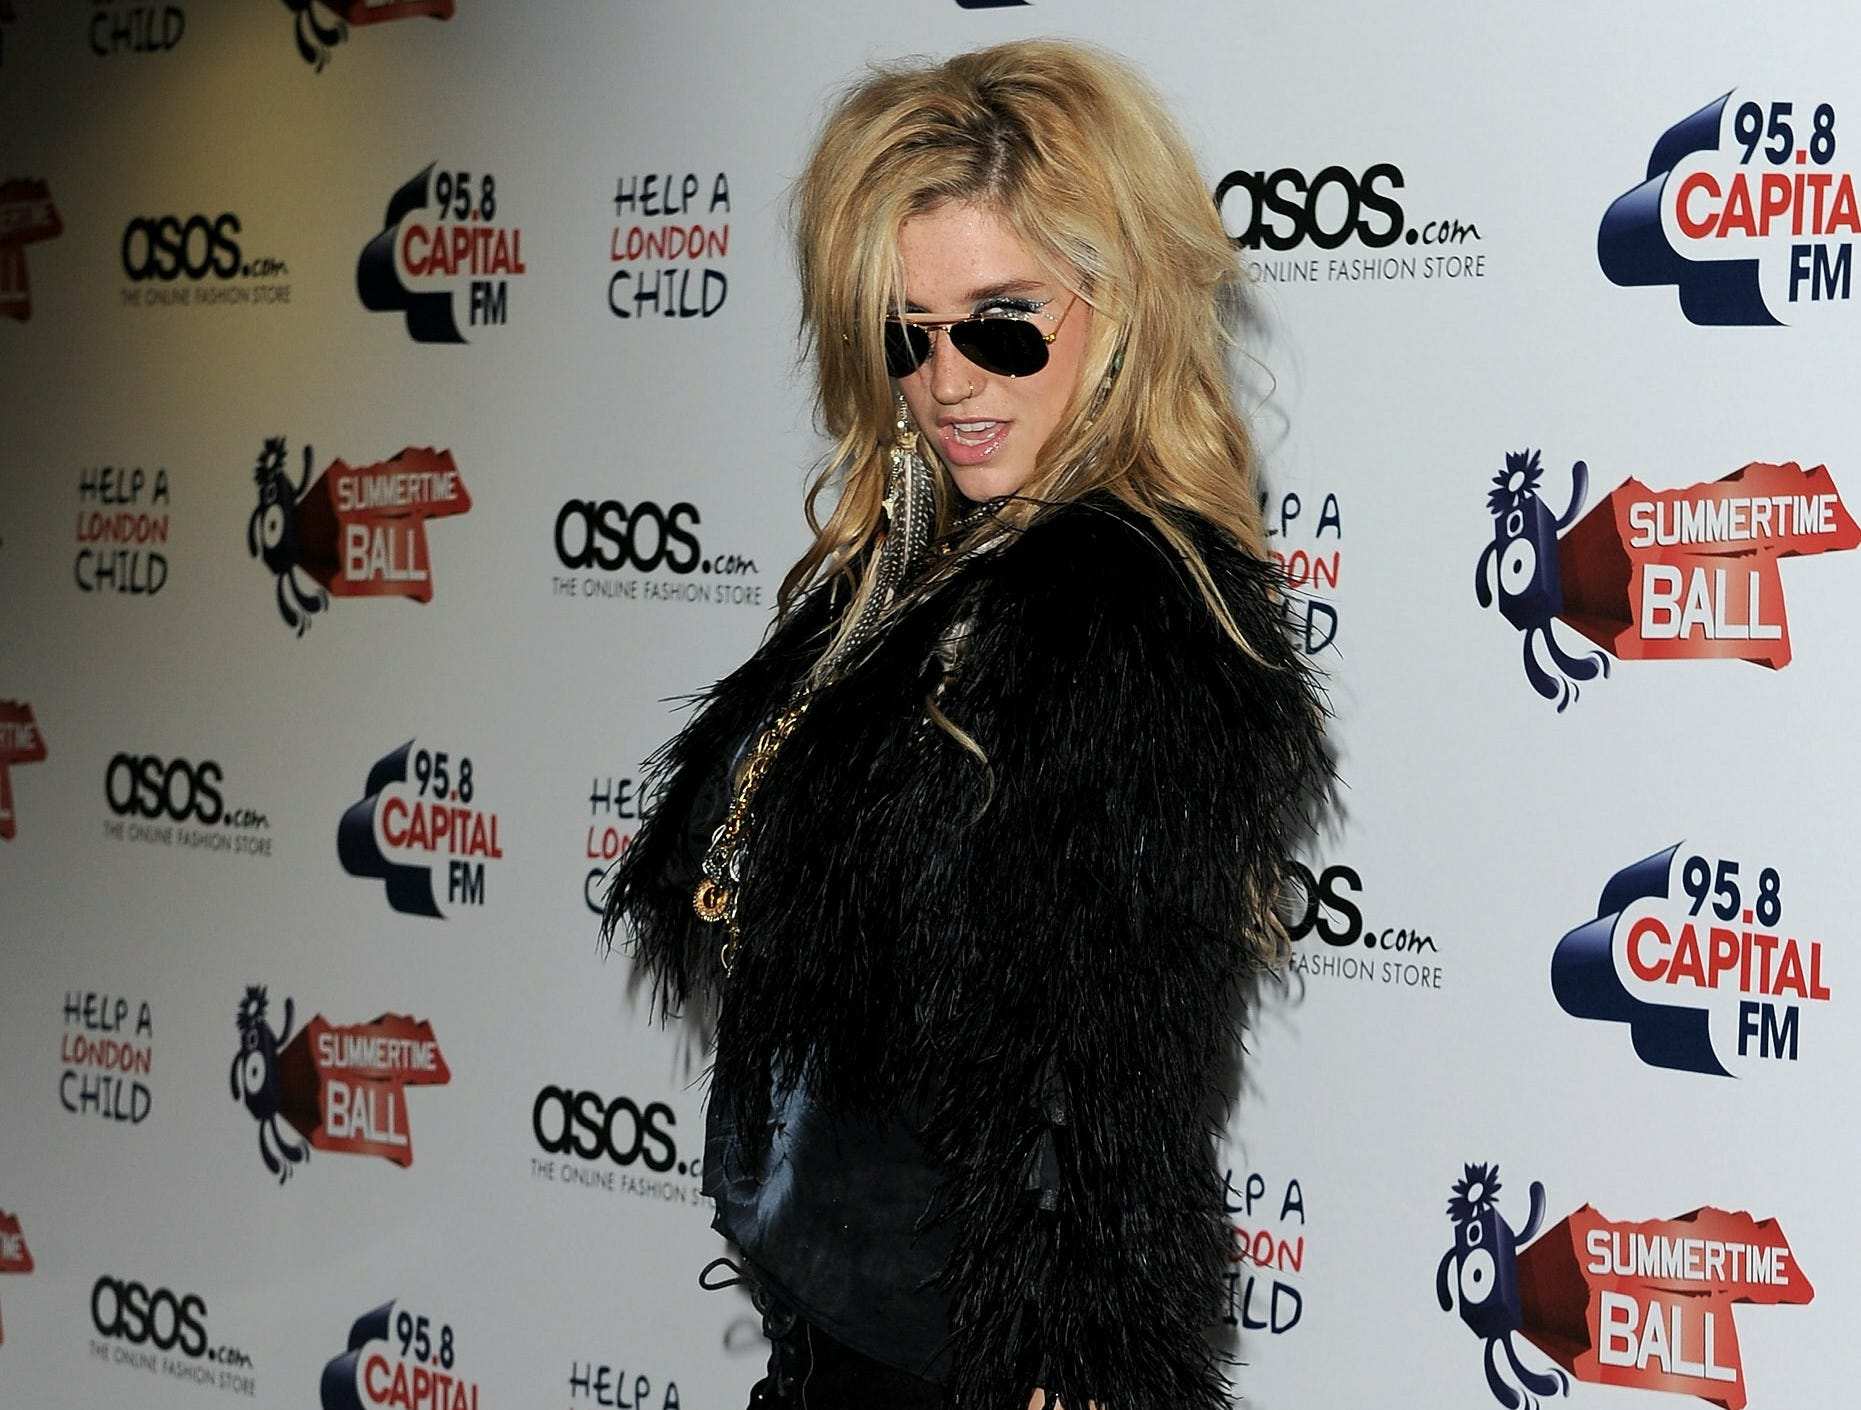 Kesha arrives at the Capital Radio Summertime Ball at Wembley Stadium on June 6, 2010 in London, England.